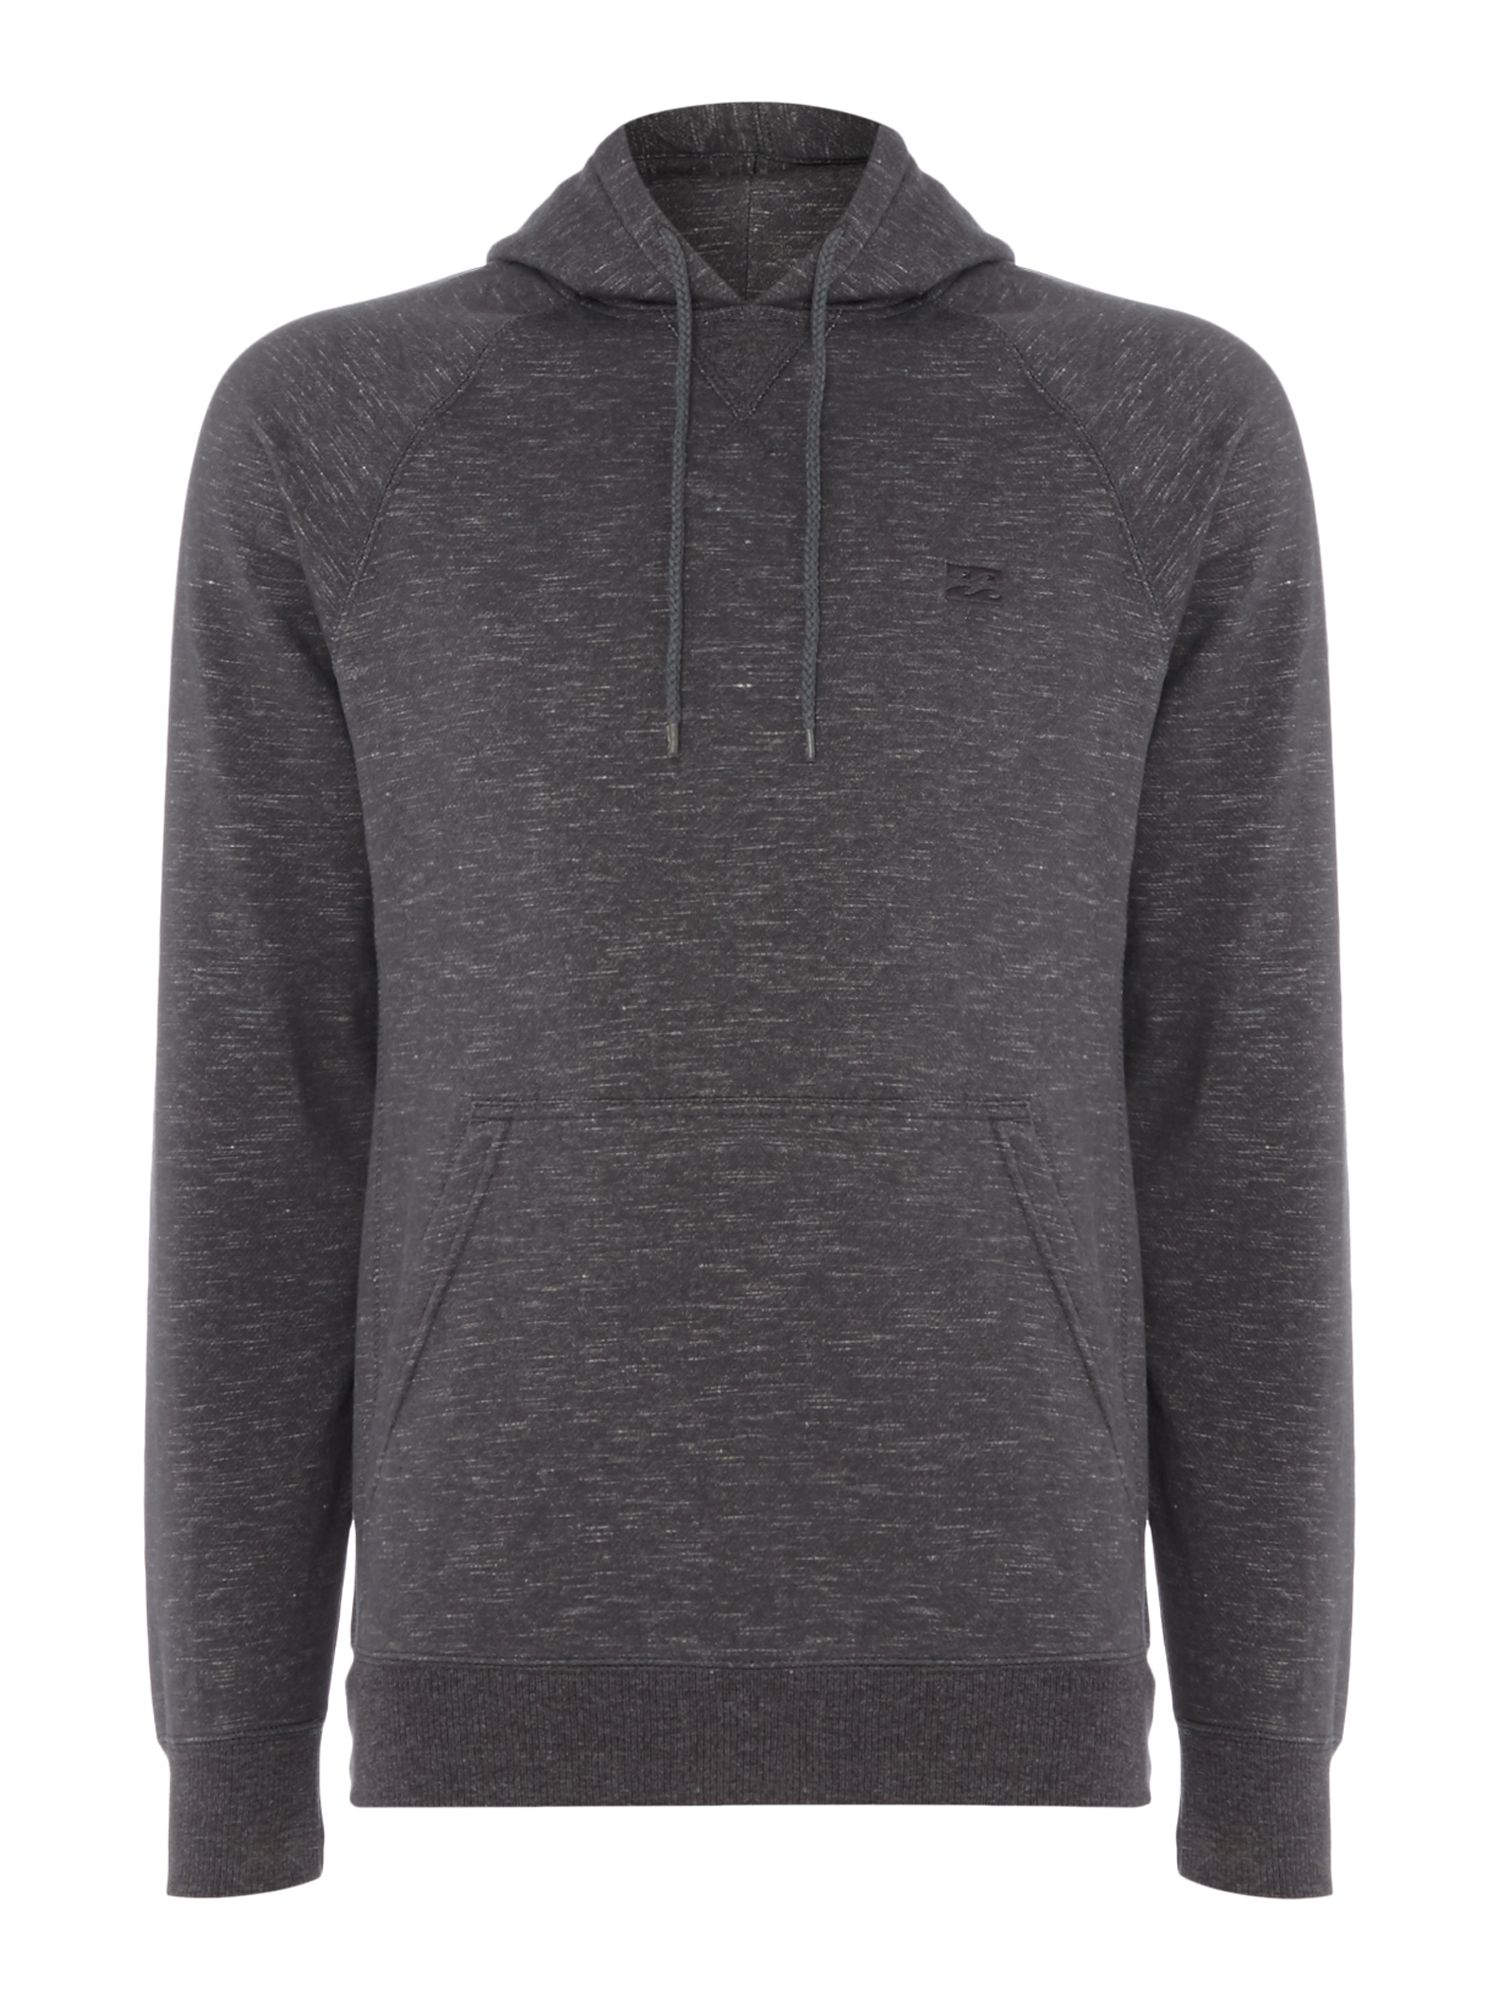 Men's Billabong Brushed Fleece Slub Hooded Pullover, Grey